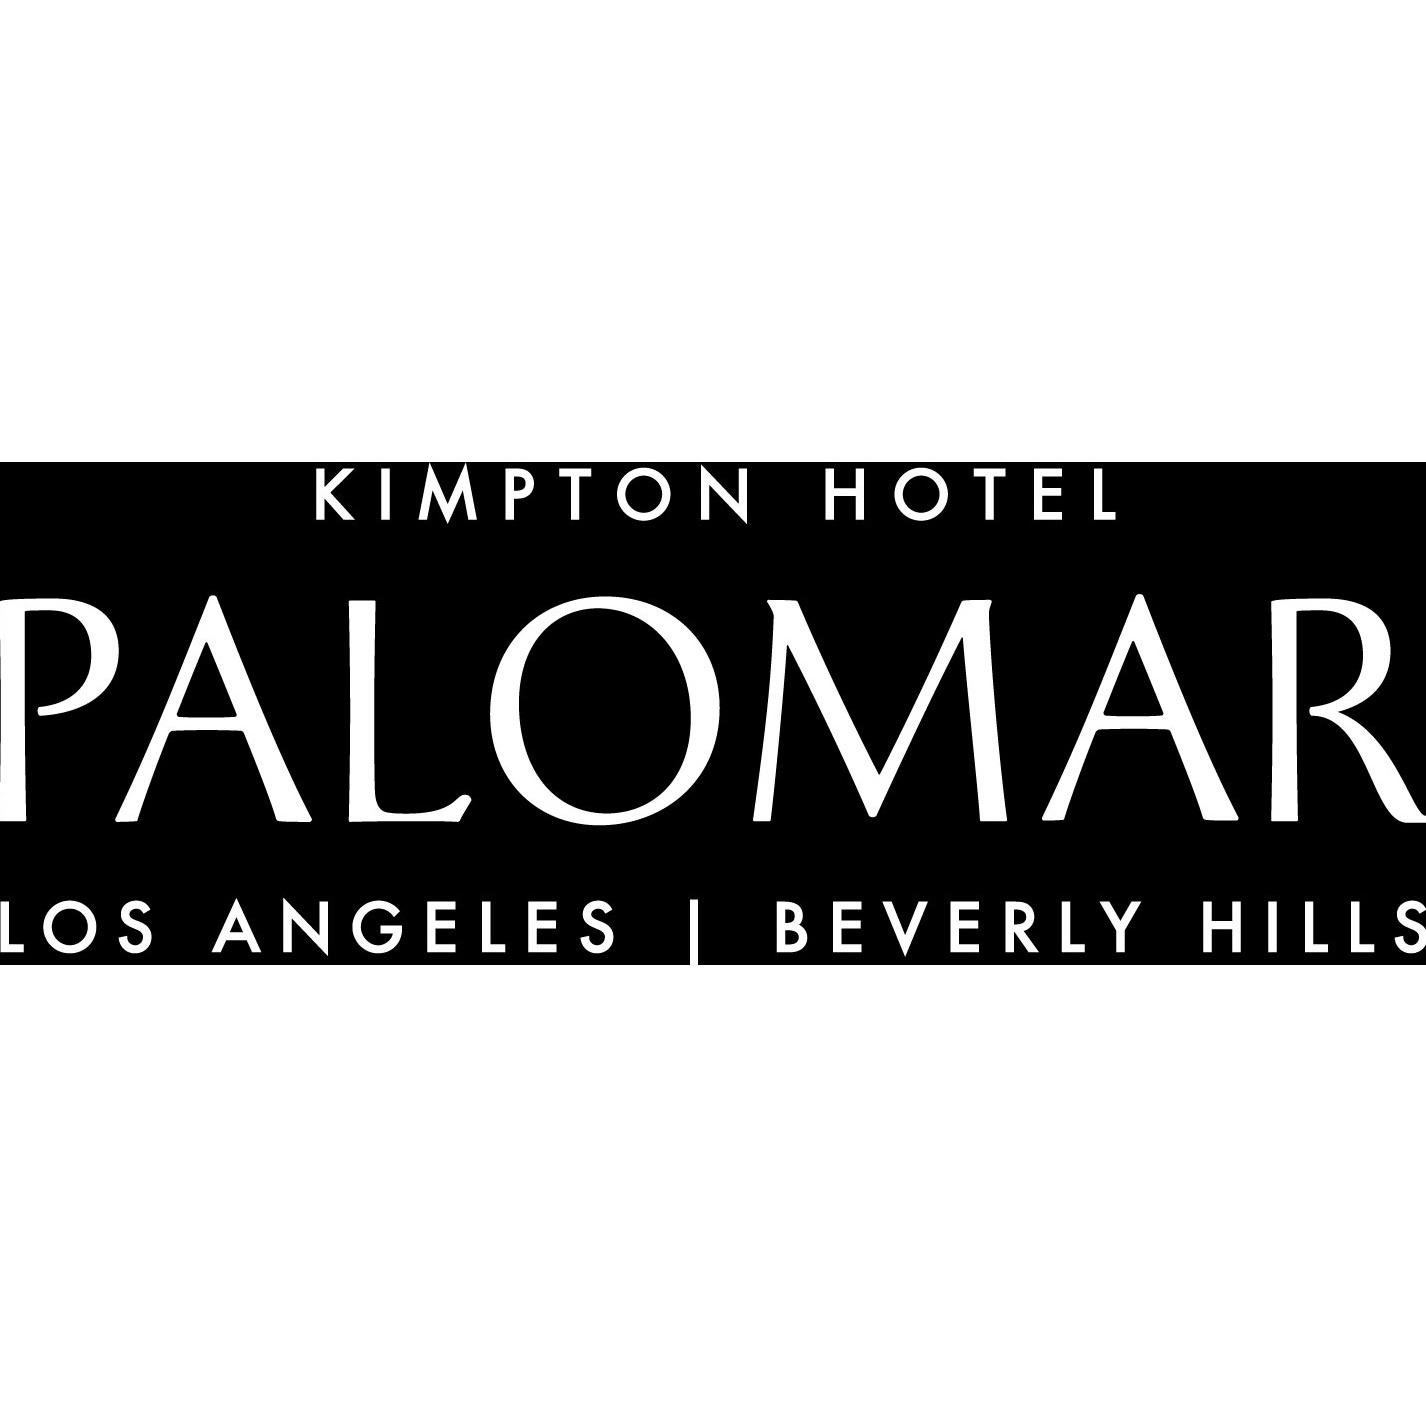 Hotel Palomar Los Angeles-Beverly Hills, a Kimpton Hotel